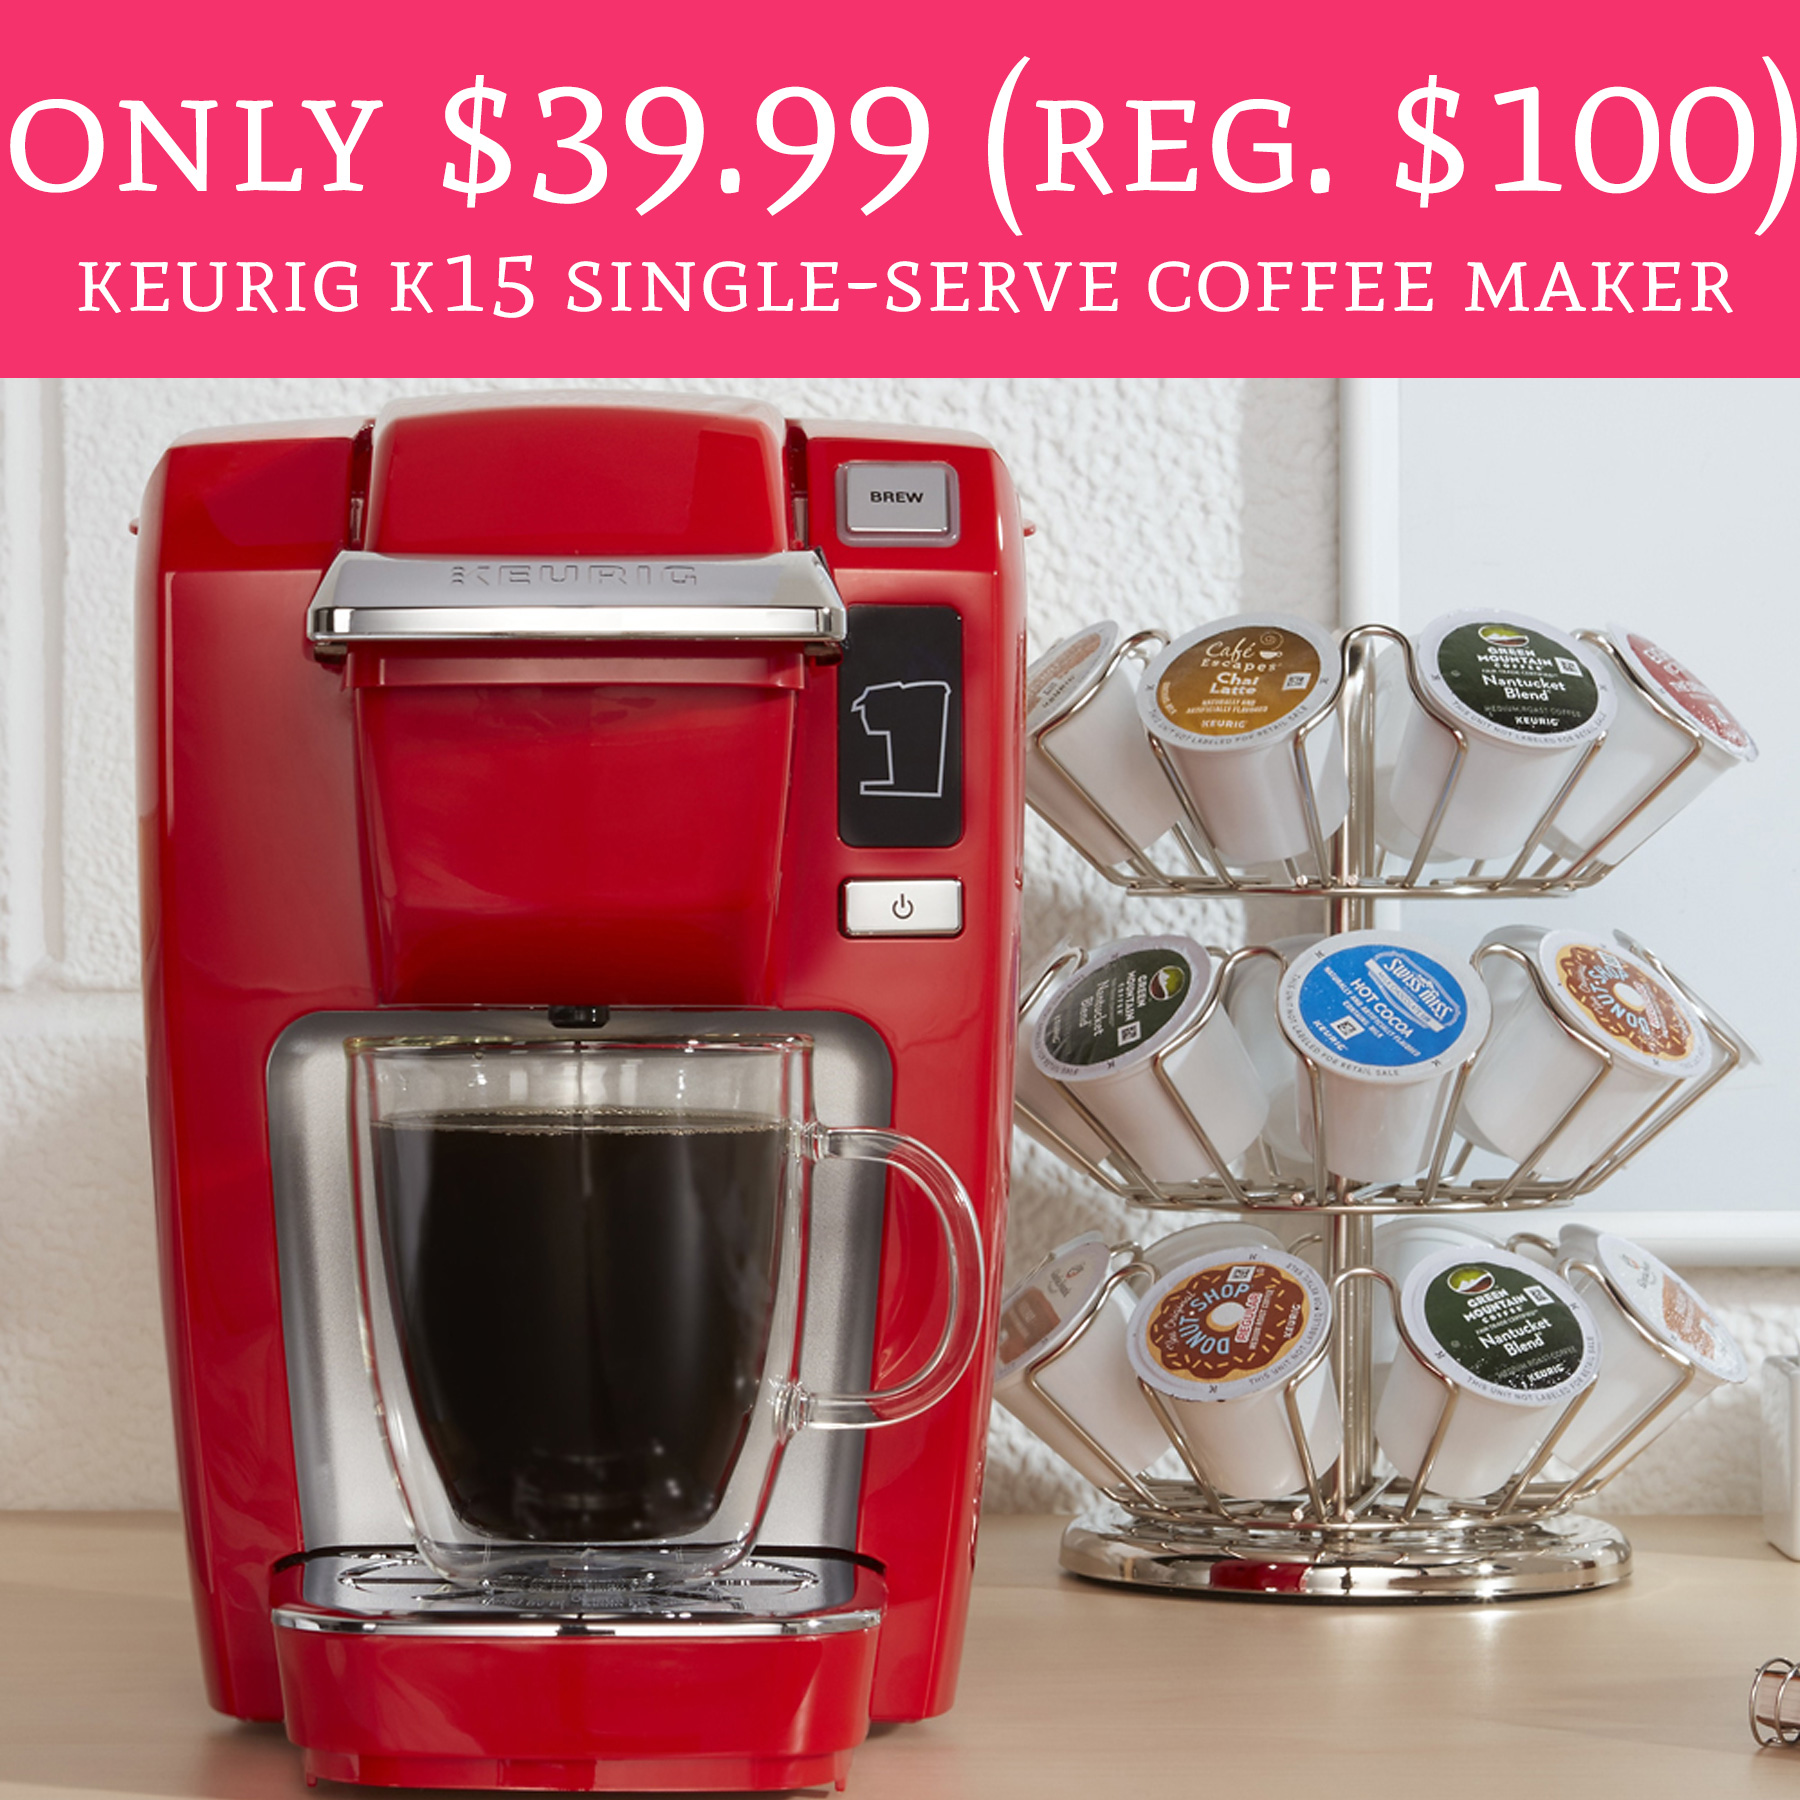 Single Serve Coffee Maker Deals : Only USD 39.99 (Regular USD 100) Keurig K15 Single-Serve Coffee Maker - Deal Hunting Babe